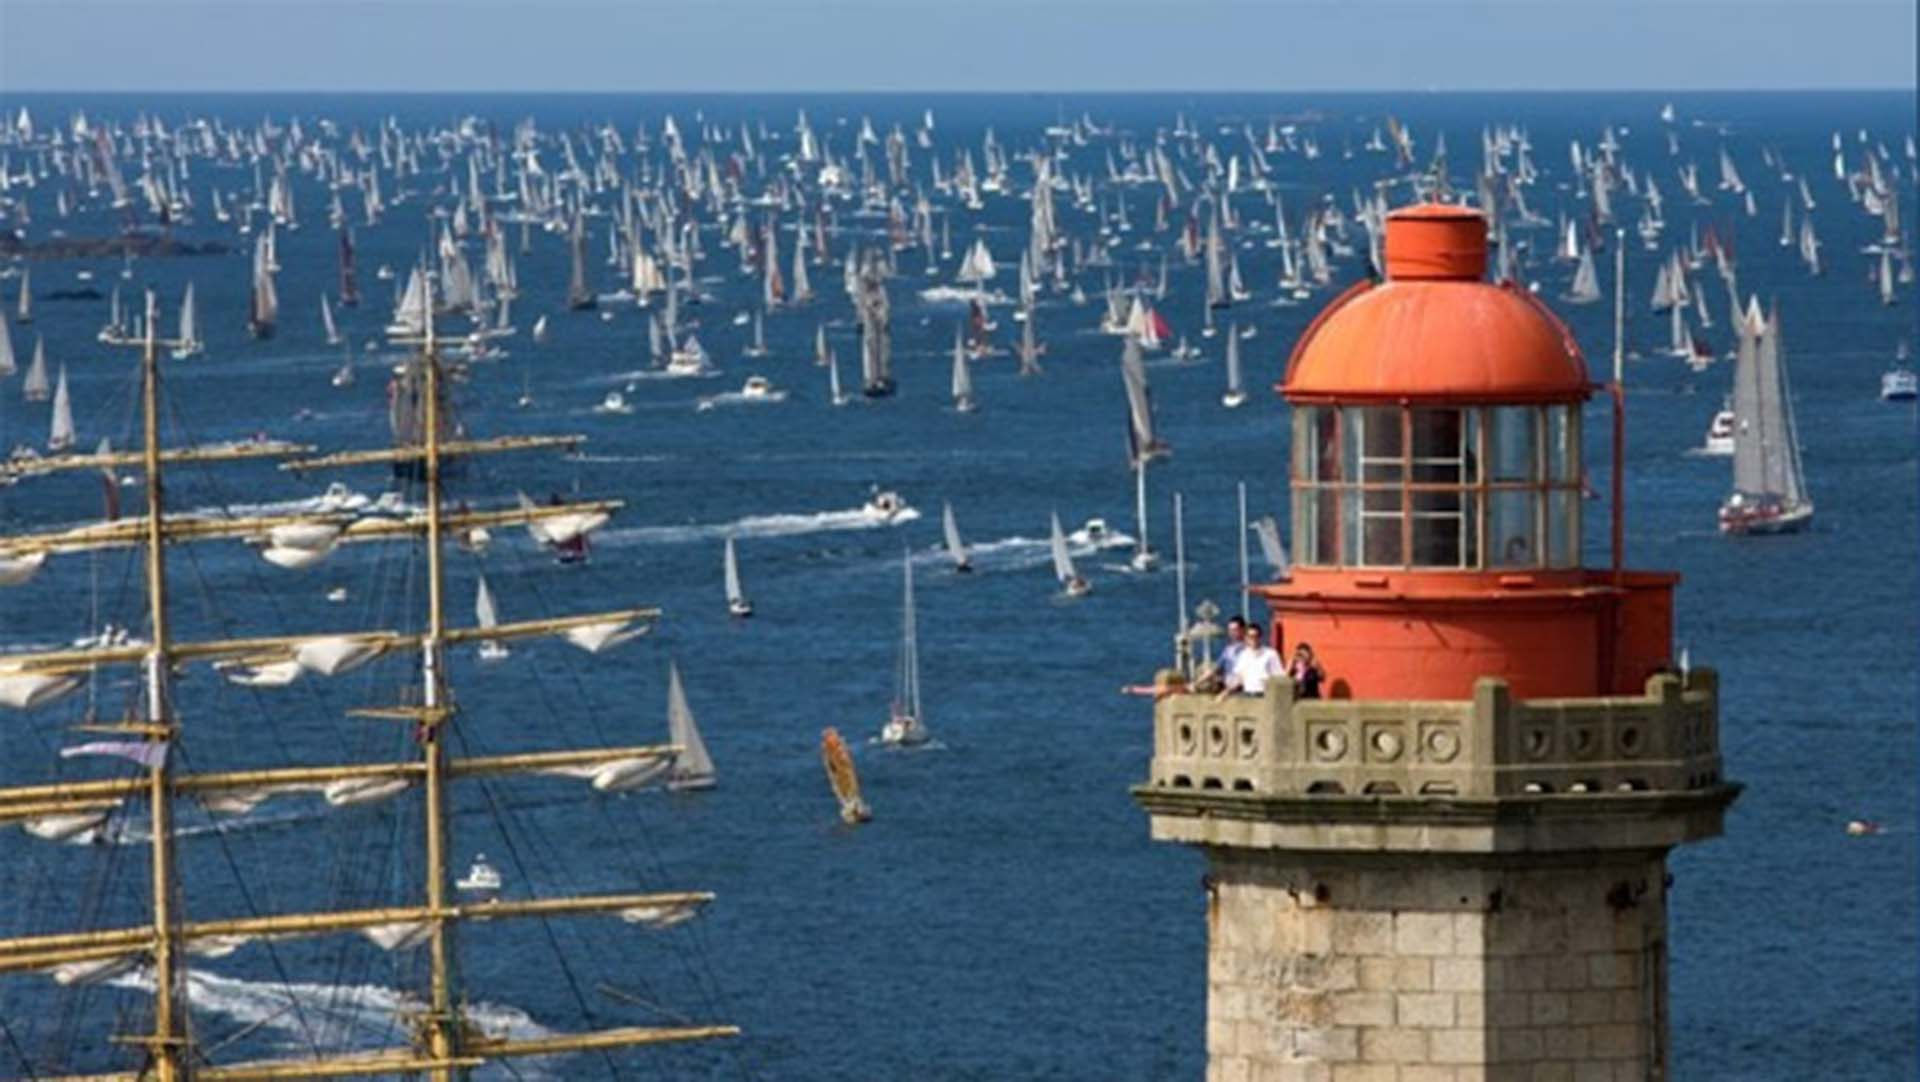 The traditional fleet out sailing at Brest International Maritime Festival 2016